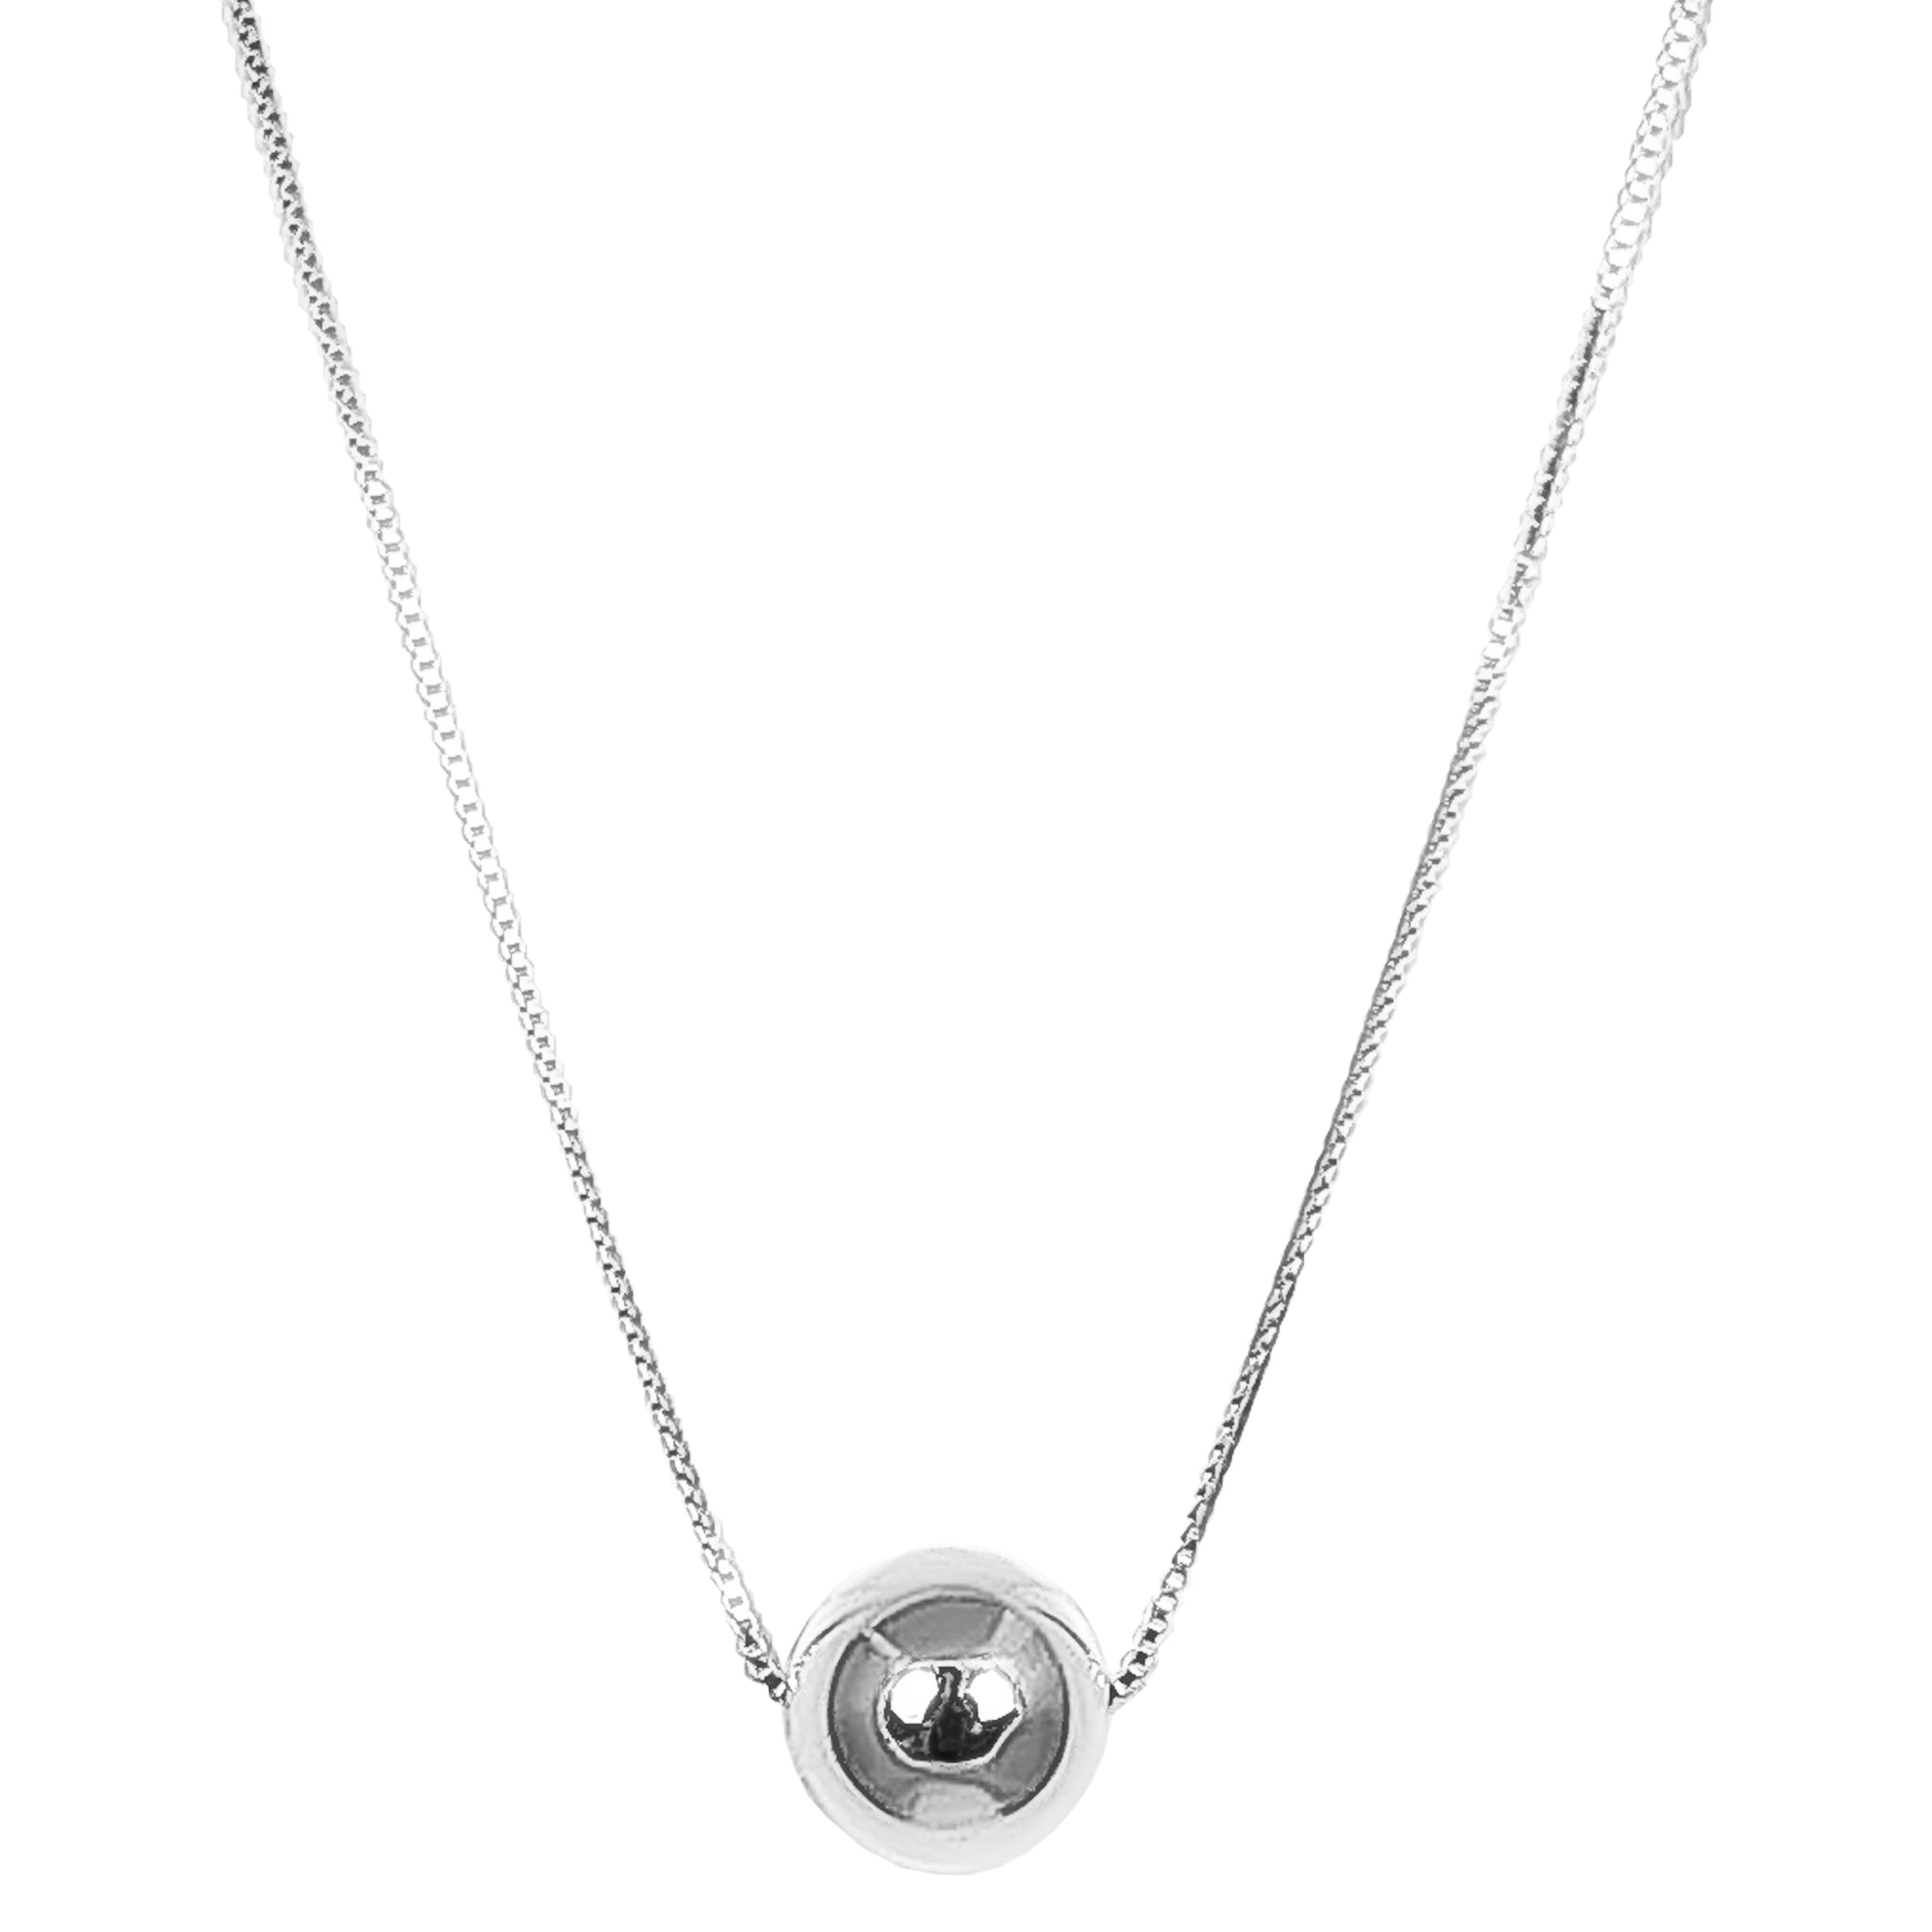 Milli Necklace - Long | Polished Silver Detail